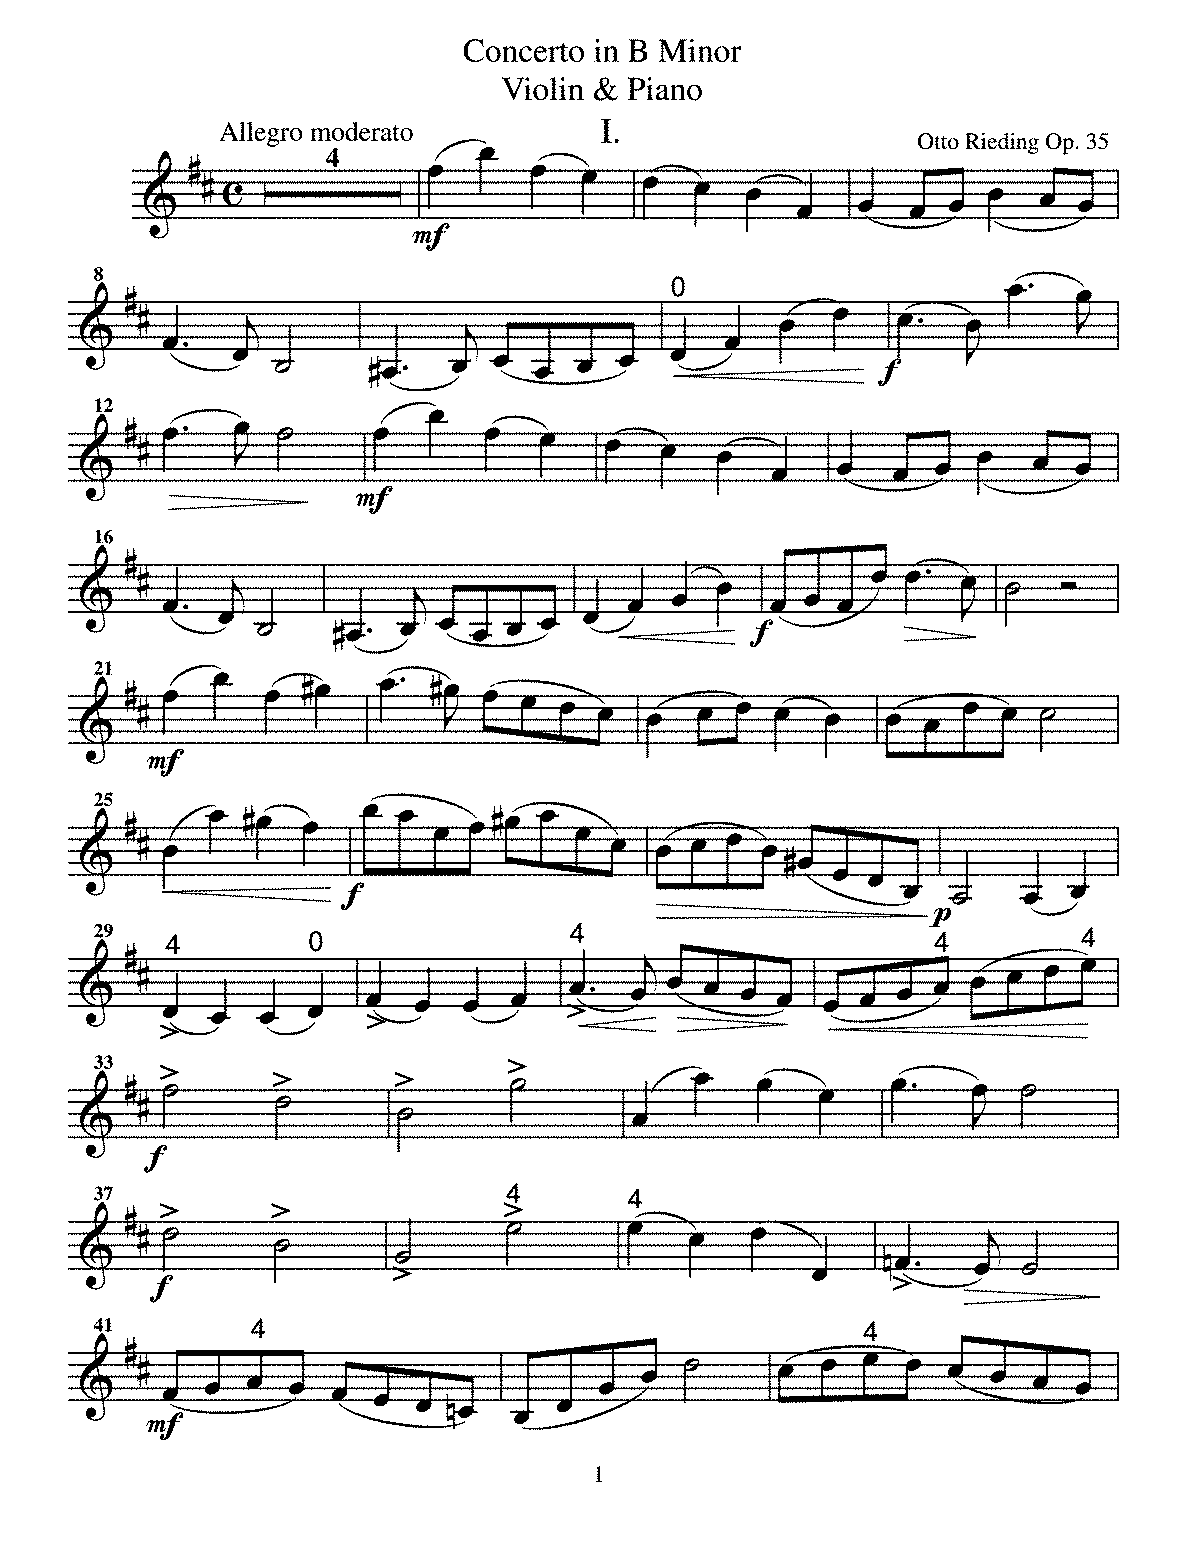 RIEDING vn CONCERTO b minor OP. 35 vn part 391.pdf